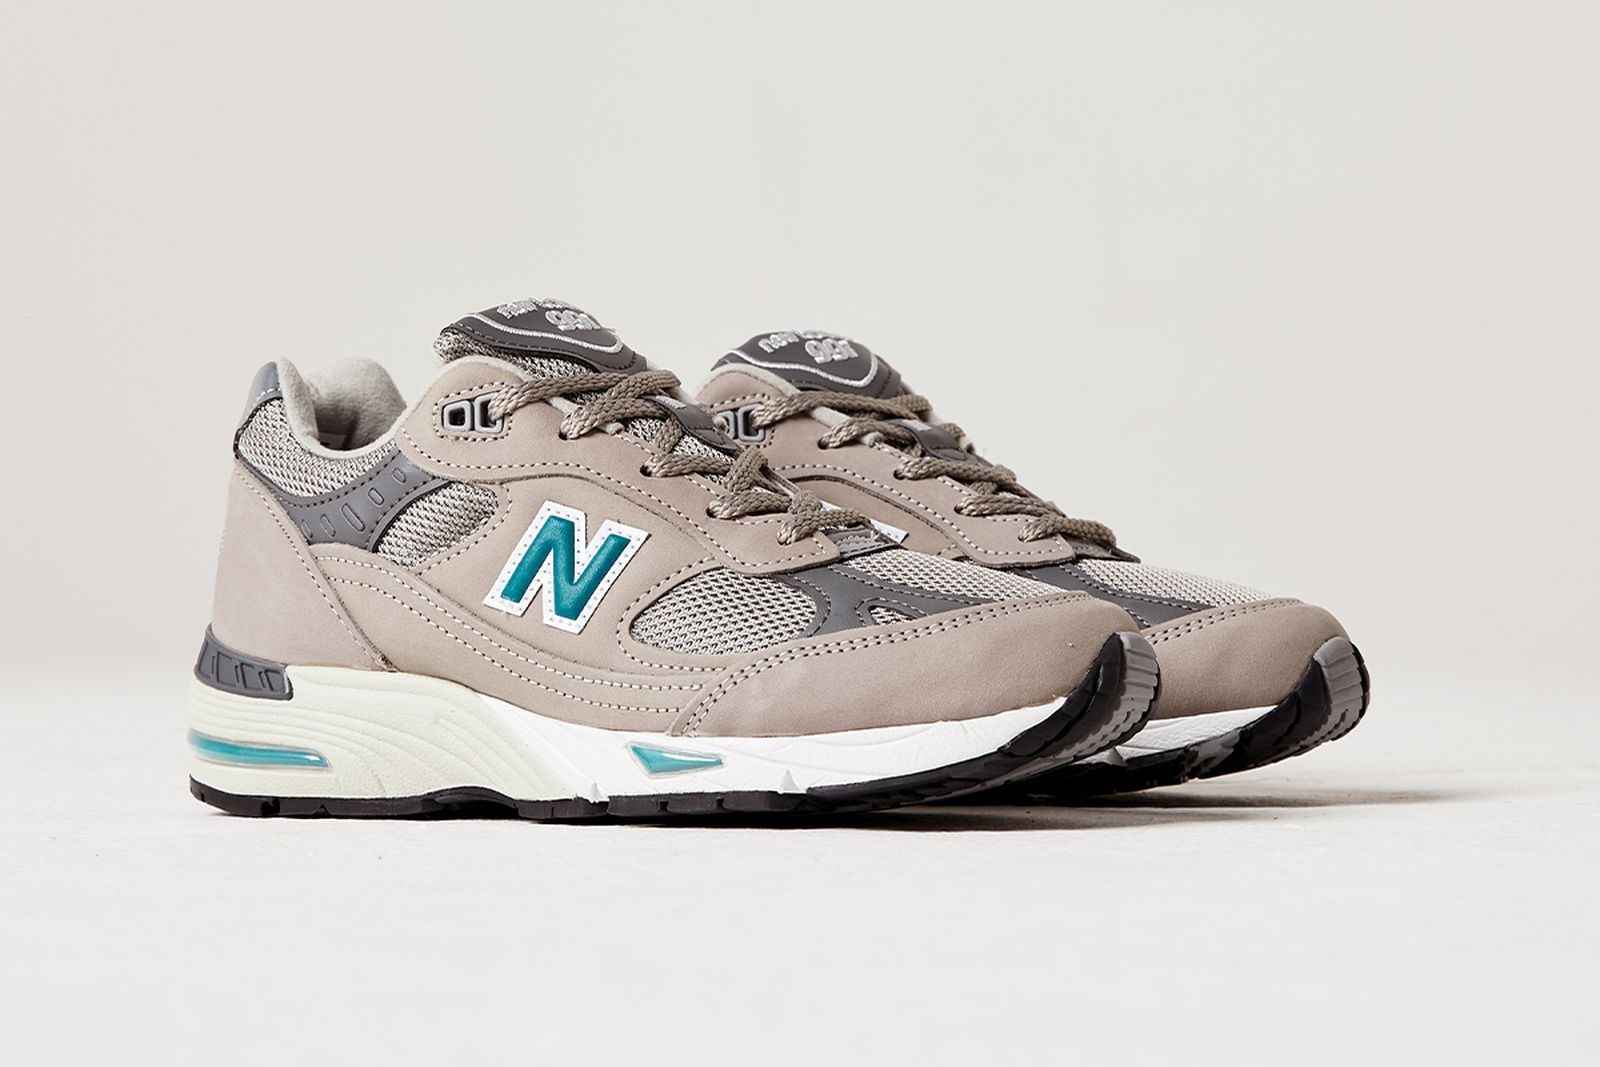 new-balance-991-anniversary-pack-release-date-price-03